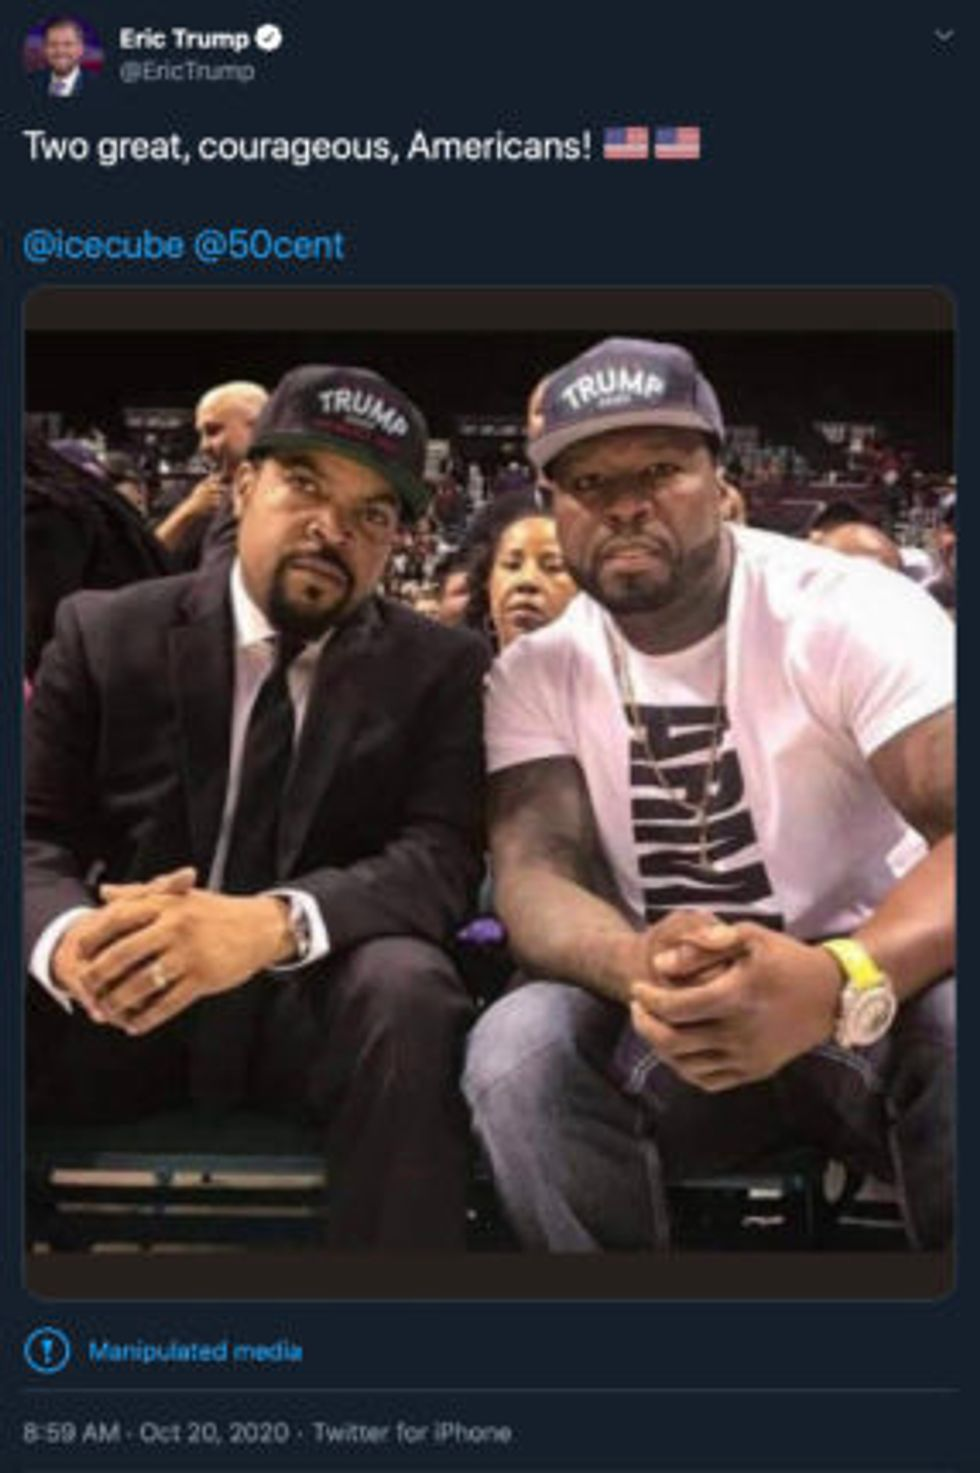 Ice Cube and 50 Cent appear in digitally manipulated photograph shared by Eric Trump (Twitter)